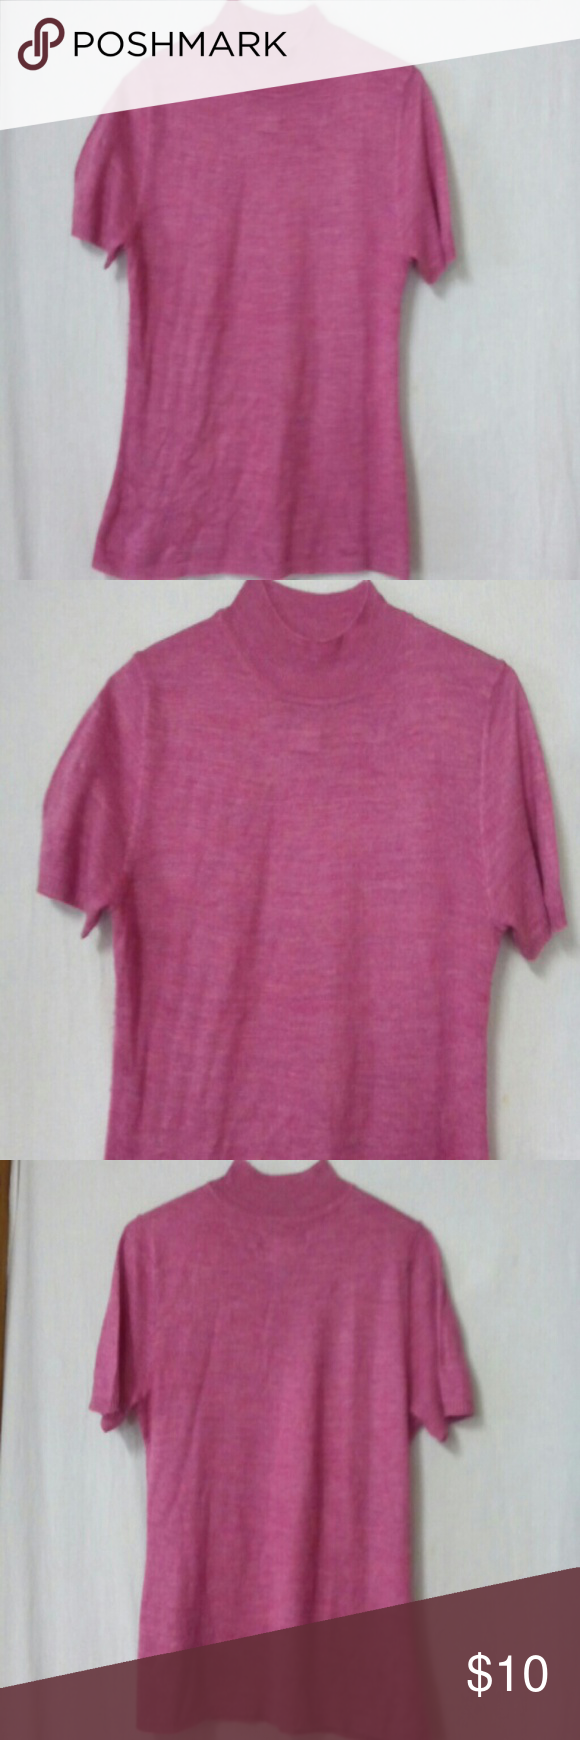 Sag harbor women size small sweater | Sag harbor, Mock neck and ...